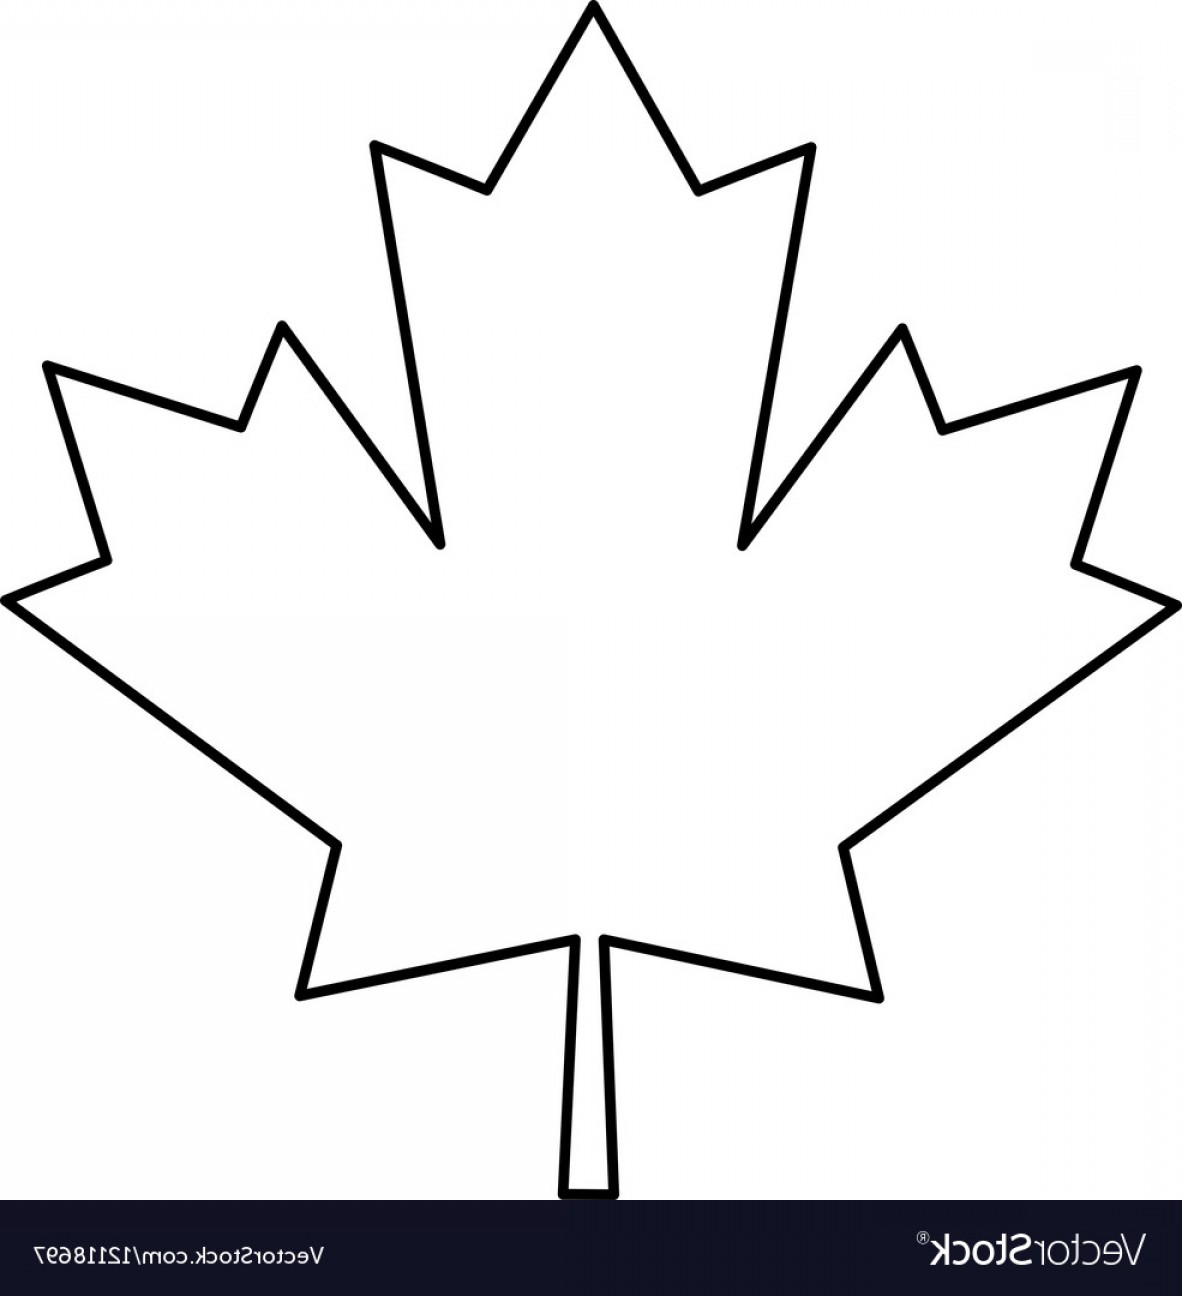 1182x1296 Maple Leaf Vector Sohadacouri